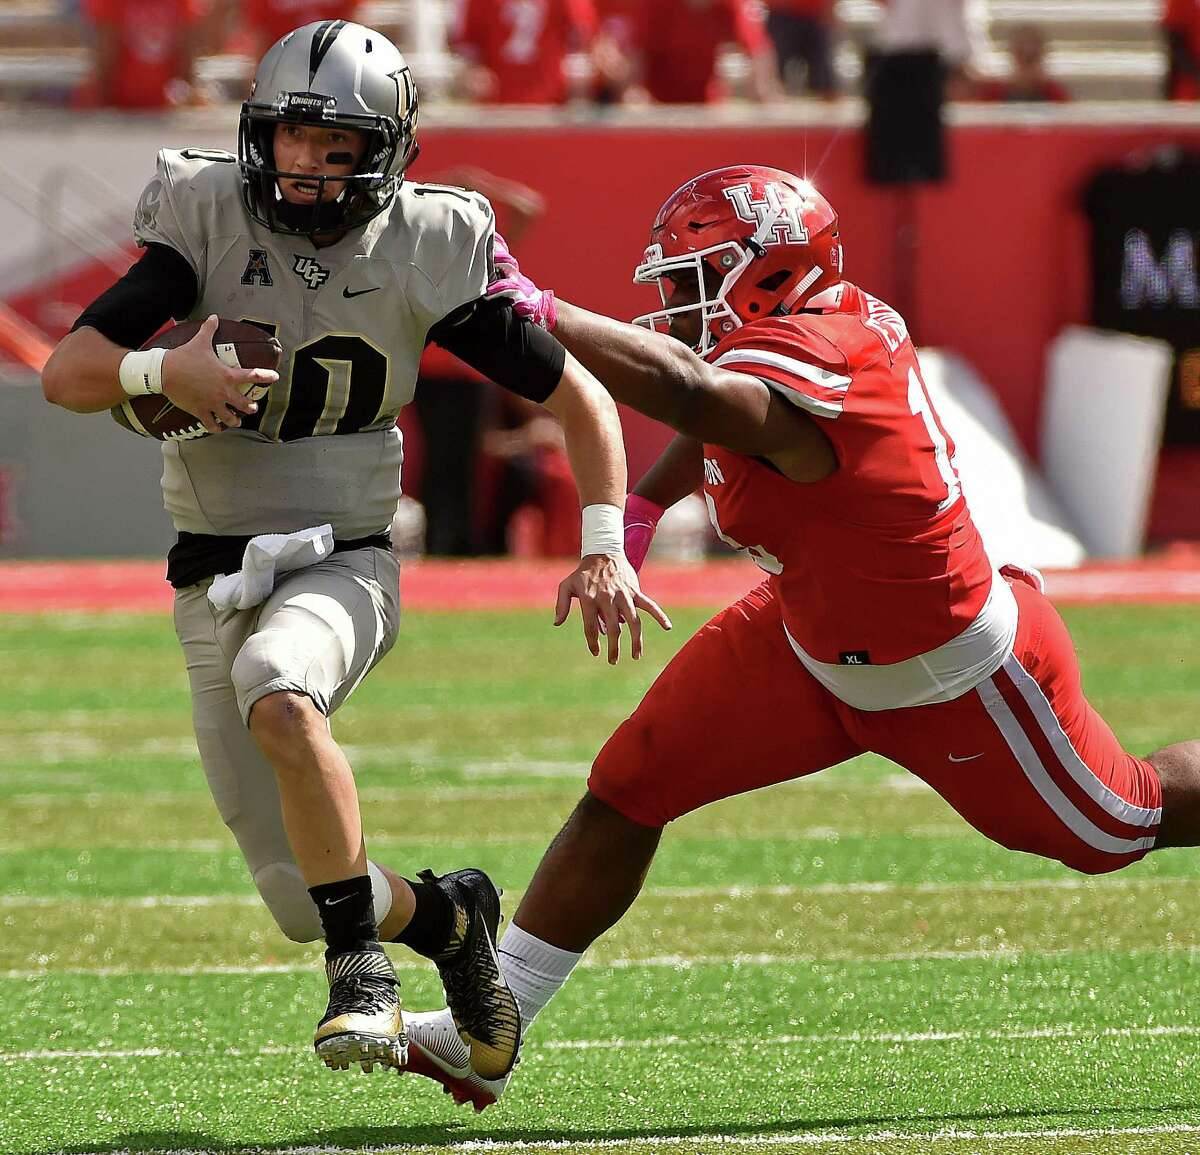 UH's Ed Oliver, right, is fourth nationally among defensive linemen with 52 tackles as a true freshman.